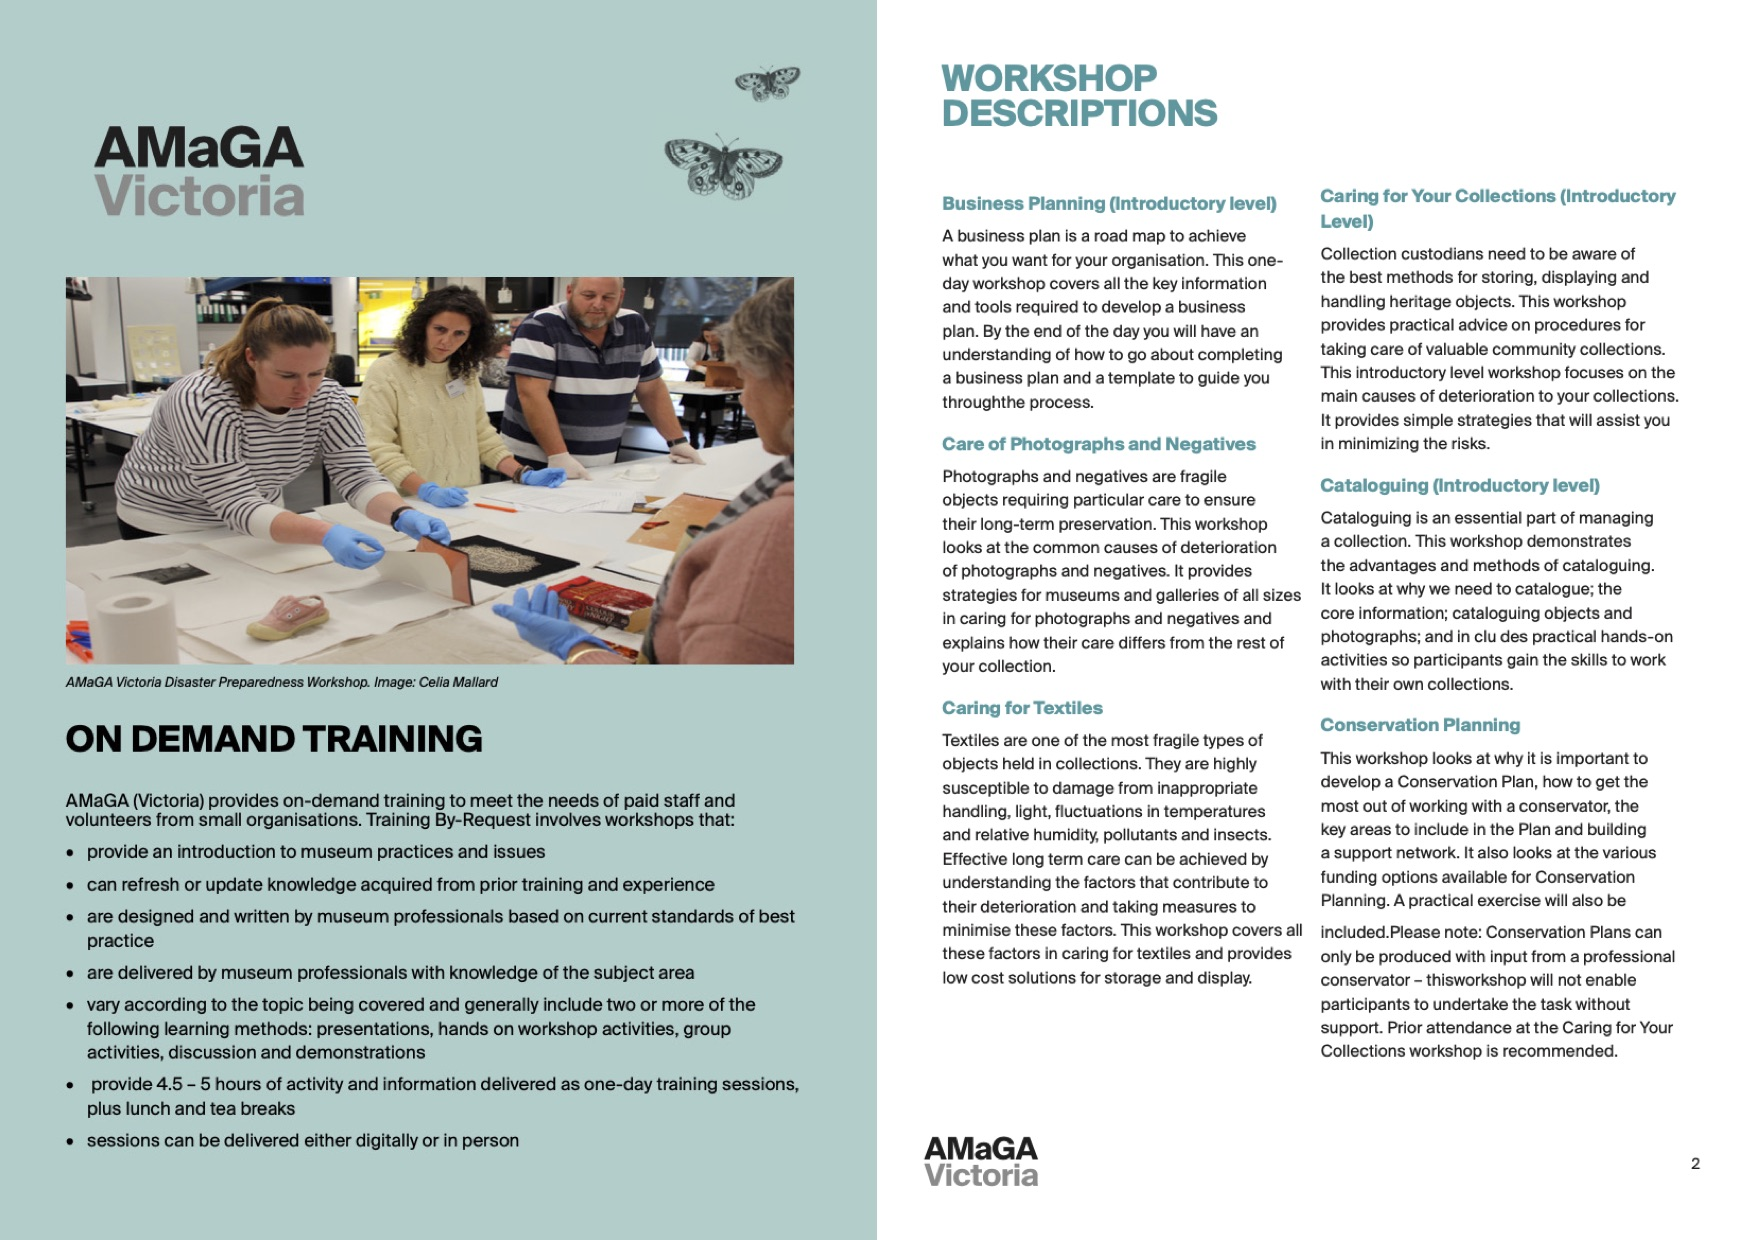 On demand training flyer image